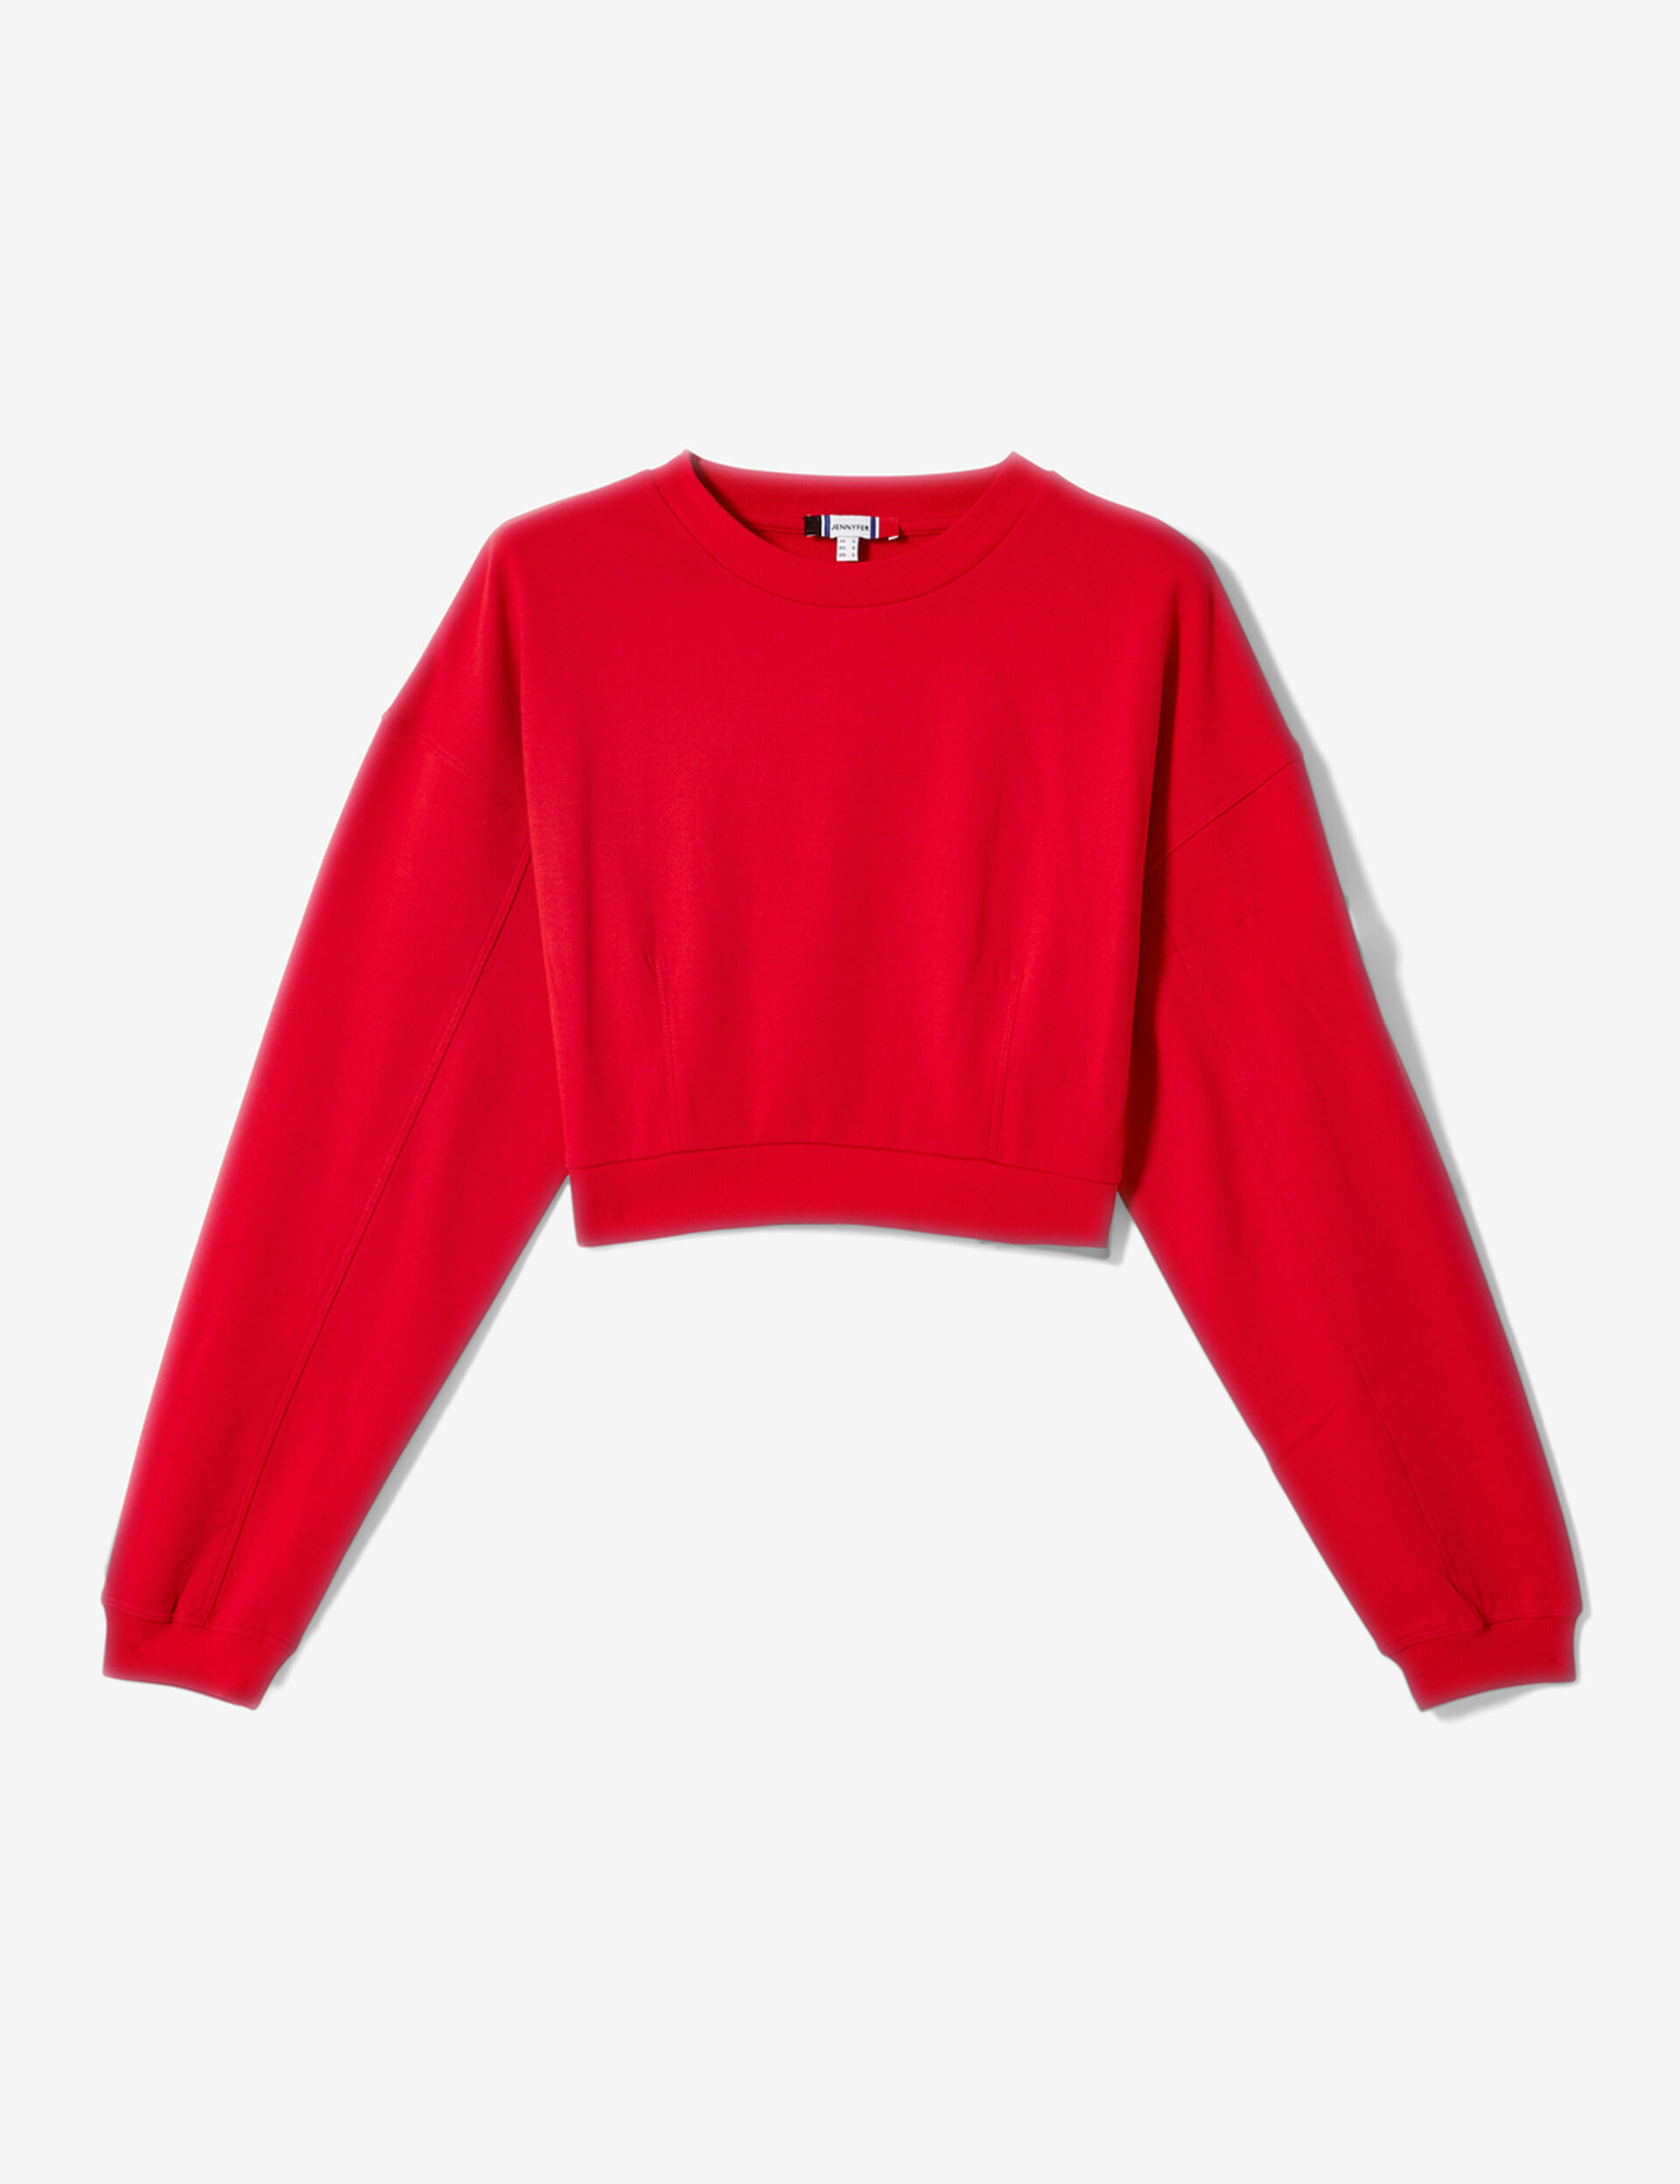 Cropped red sweatshirt